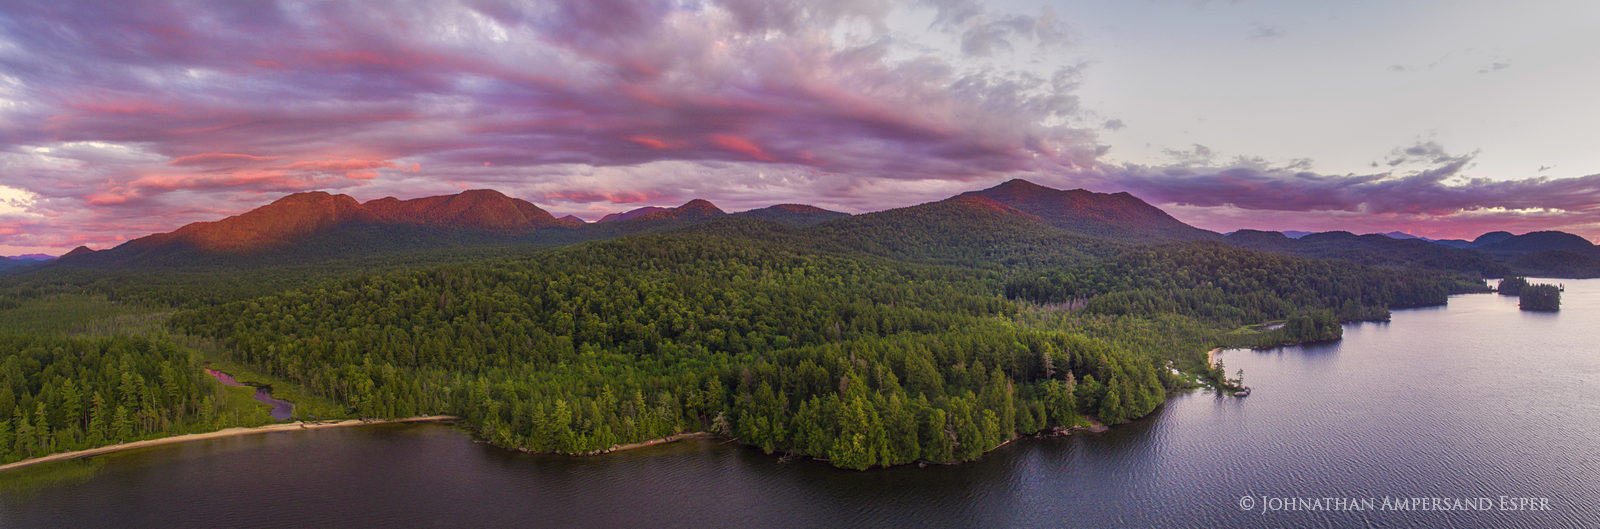 Middle Saranac Lake,drone,aerial,island,summer,sunset,summer sunset,Saranac Lakes,Adirondack Park,lake,waters,Ampersand Bay,Ampersand Mt,alpenglow,panorama,Johnathan Esper,Adirondacks,Saranac Lake, photo